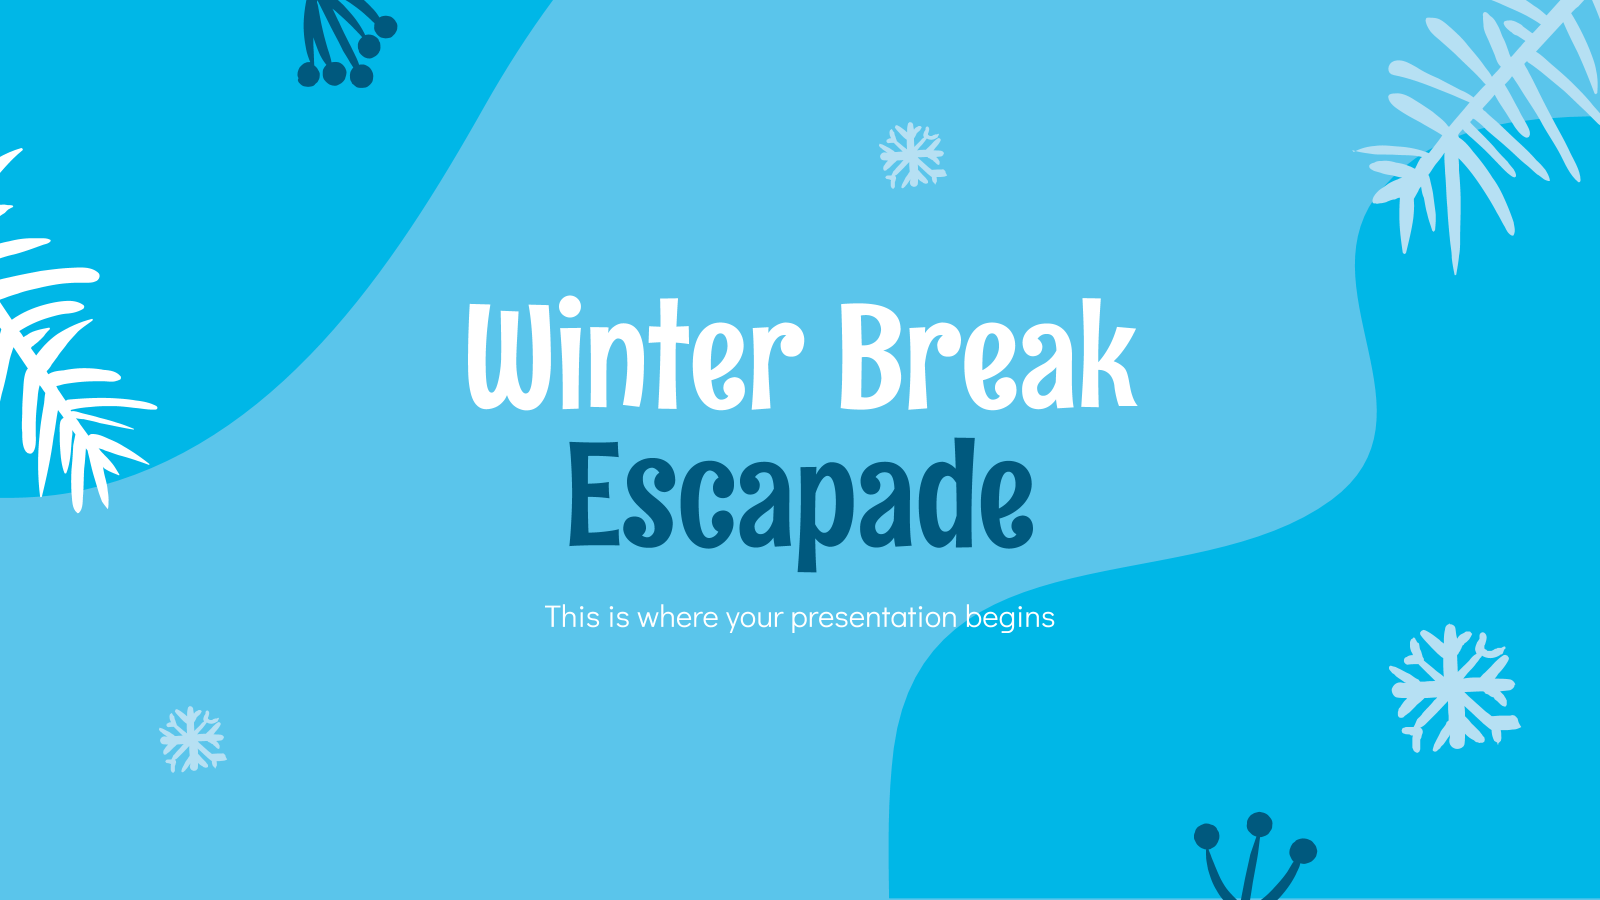 Winter Break Escapade presentation template